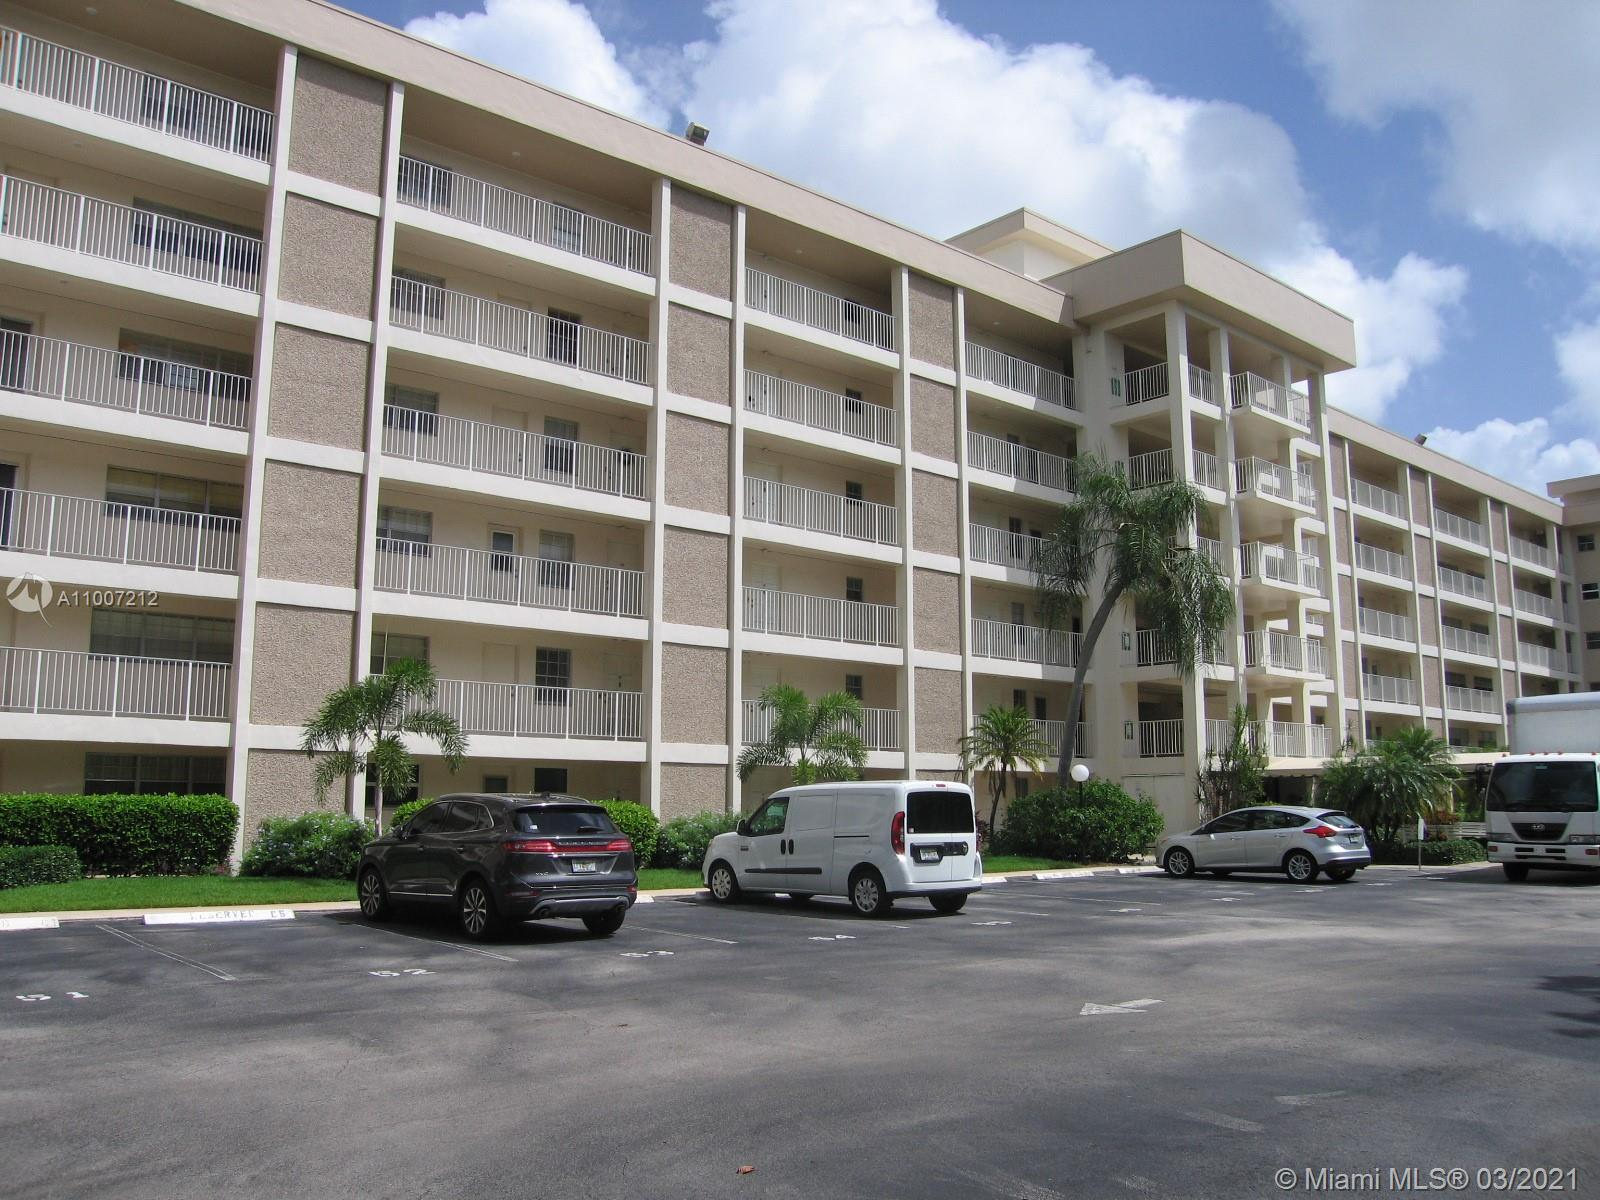 "Spectacular large corner unit, located in the popular ""Palm Aire Country Club"". * Gorgeous golf course view from 5th floor balcony, 3 spacious bedrooms with natural light, 2 spacious bathrooms, clubhouse with two pools, Minutes to airport, restaurants, banks, Isle Casino / Harness Pista and sunny beaches * Great choice! Easy access to the building!"